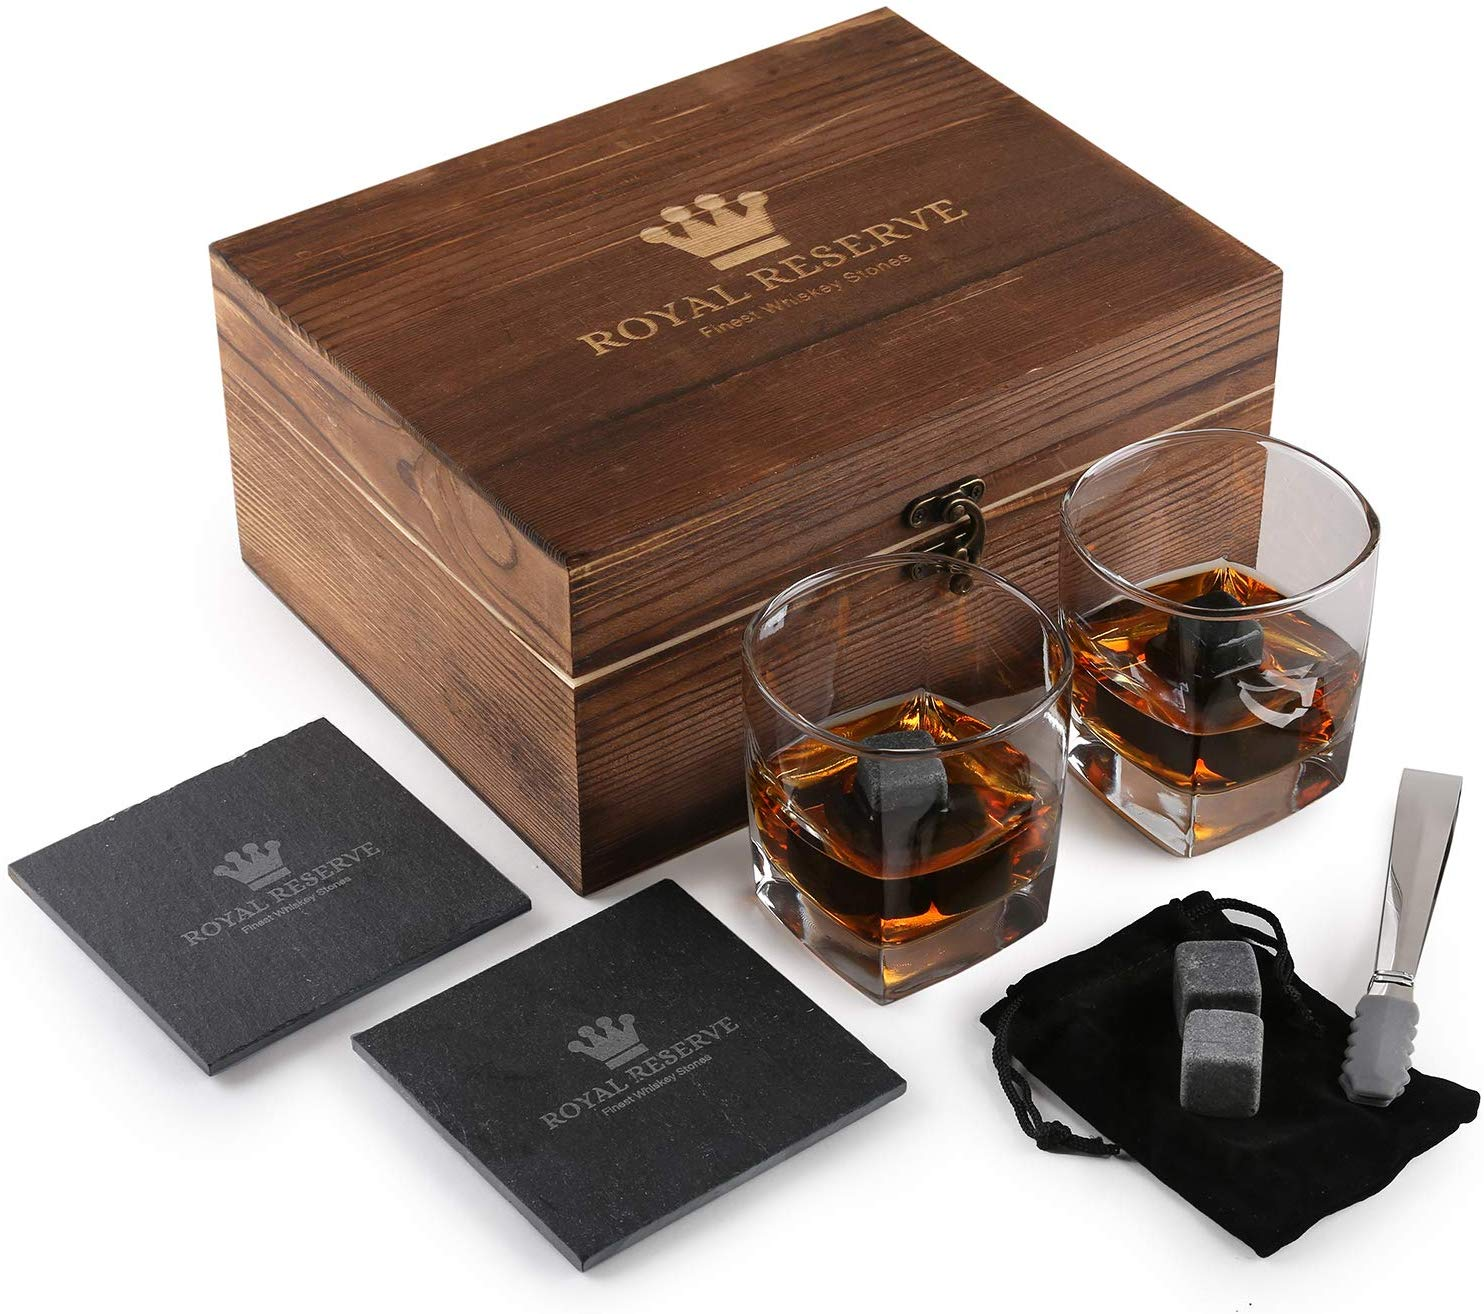 Whiskey Stones Gift Set by Royal Reserve | Husband Birthday Gifts Artisan Crafted Chilling Rocks Scotch Bourbon Glasses and Slate Table Coasters – Gift for Men Dad Boyfriend Anniversary or Retirement